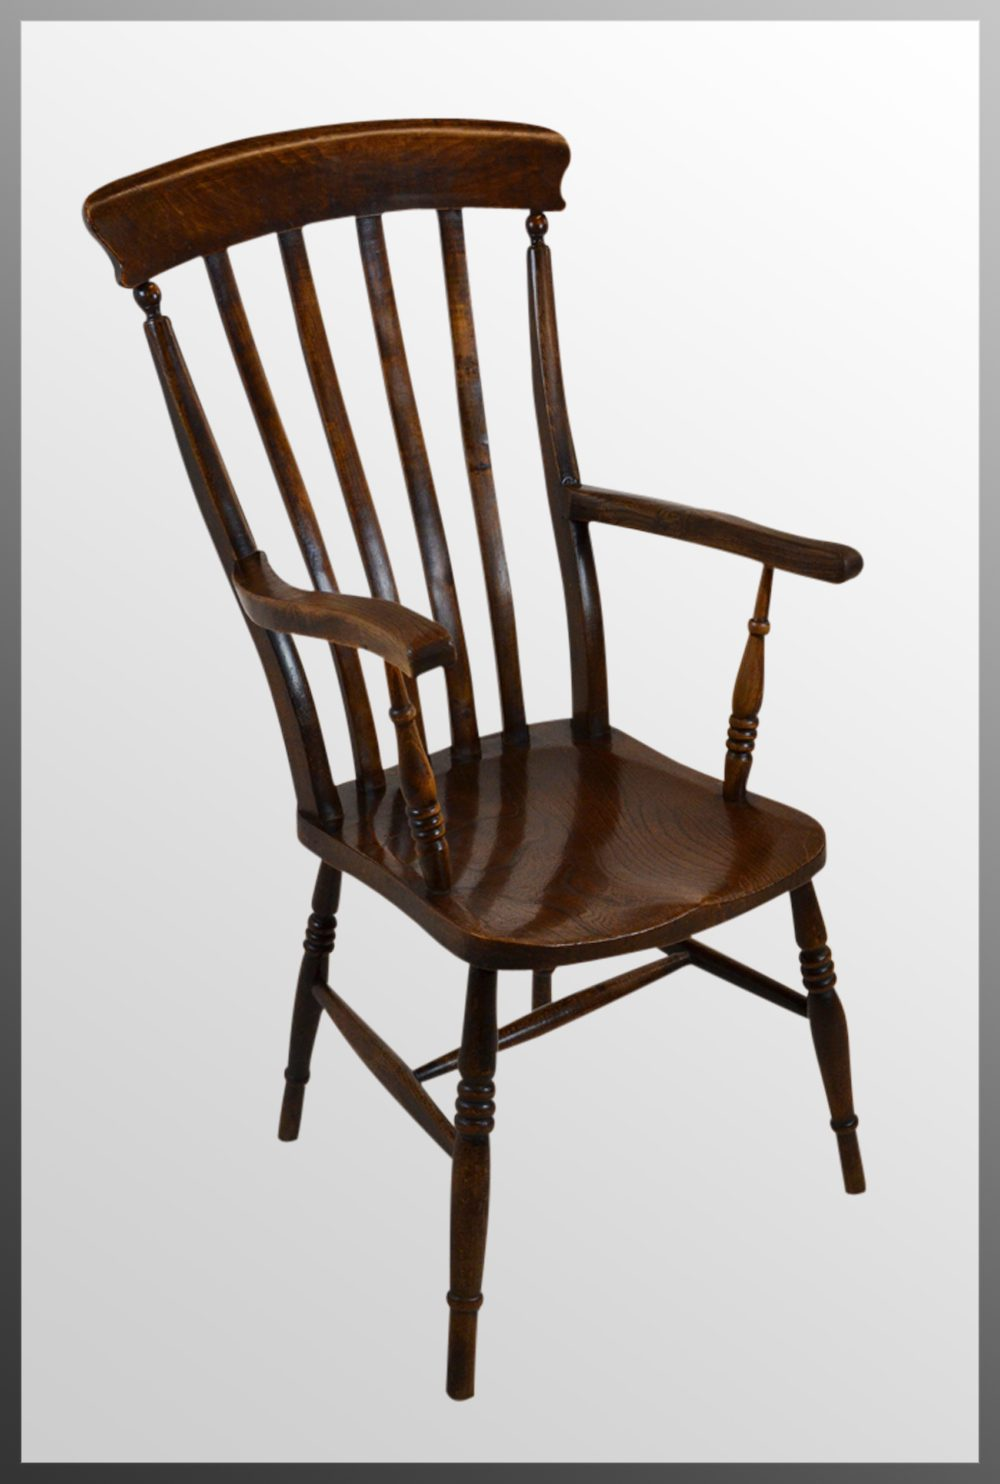 Windsor Lath High Back Chair Country Armchair - Antiques Atlas